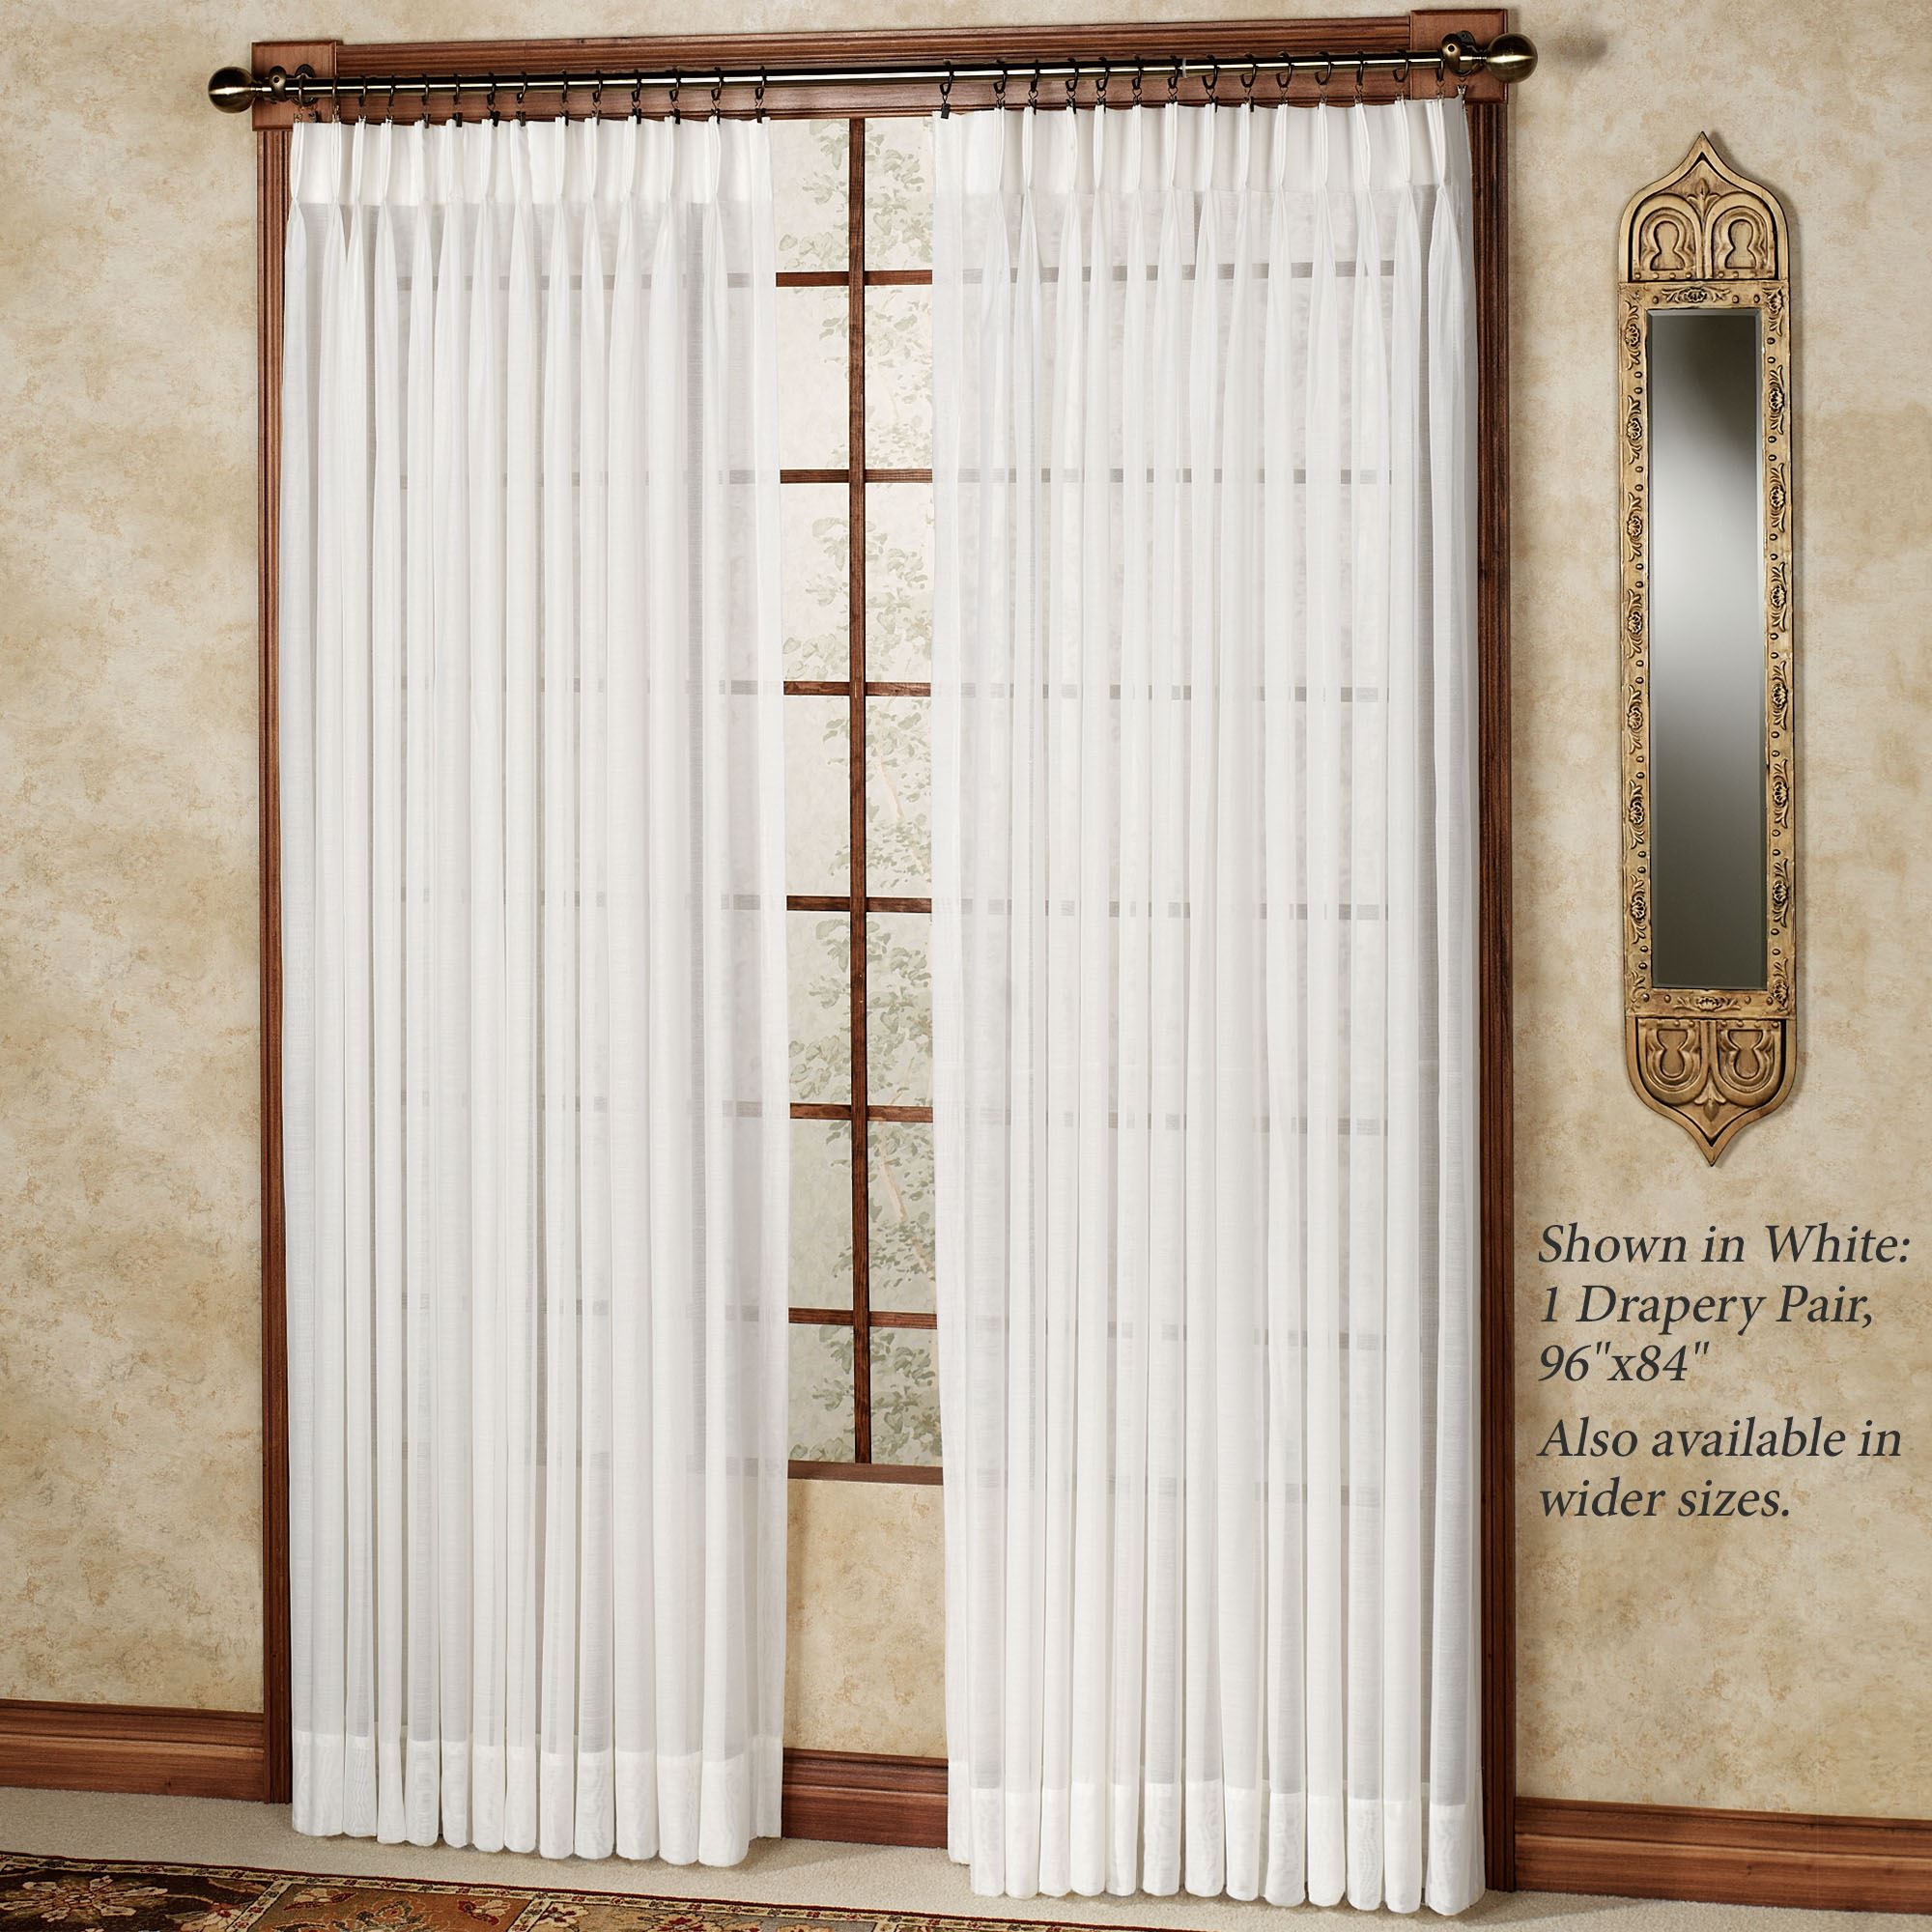 expand pleated p to drapes curtain for rod pair click pinch sheer semi pleat traverse drapery splendor